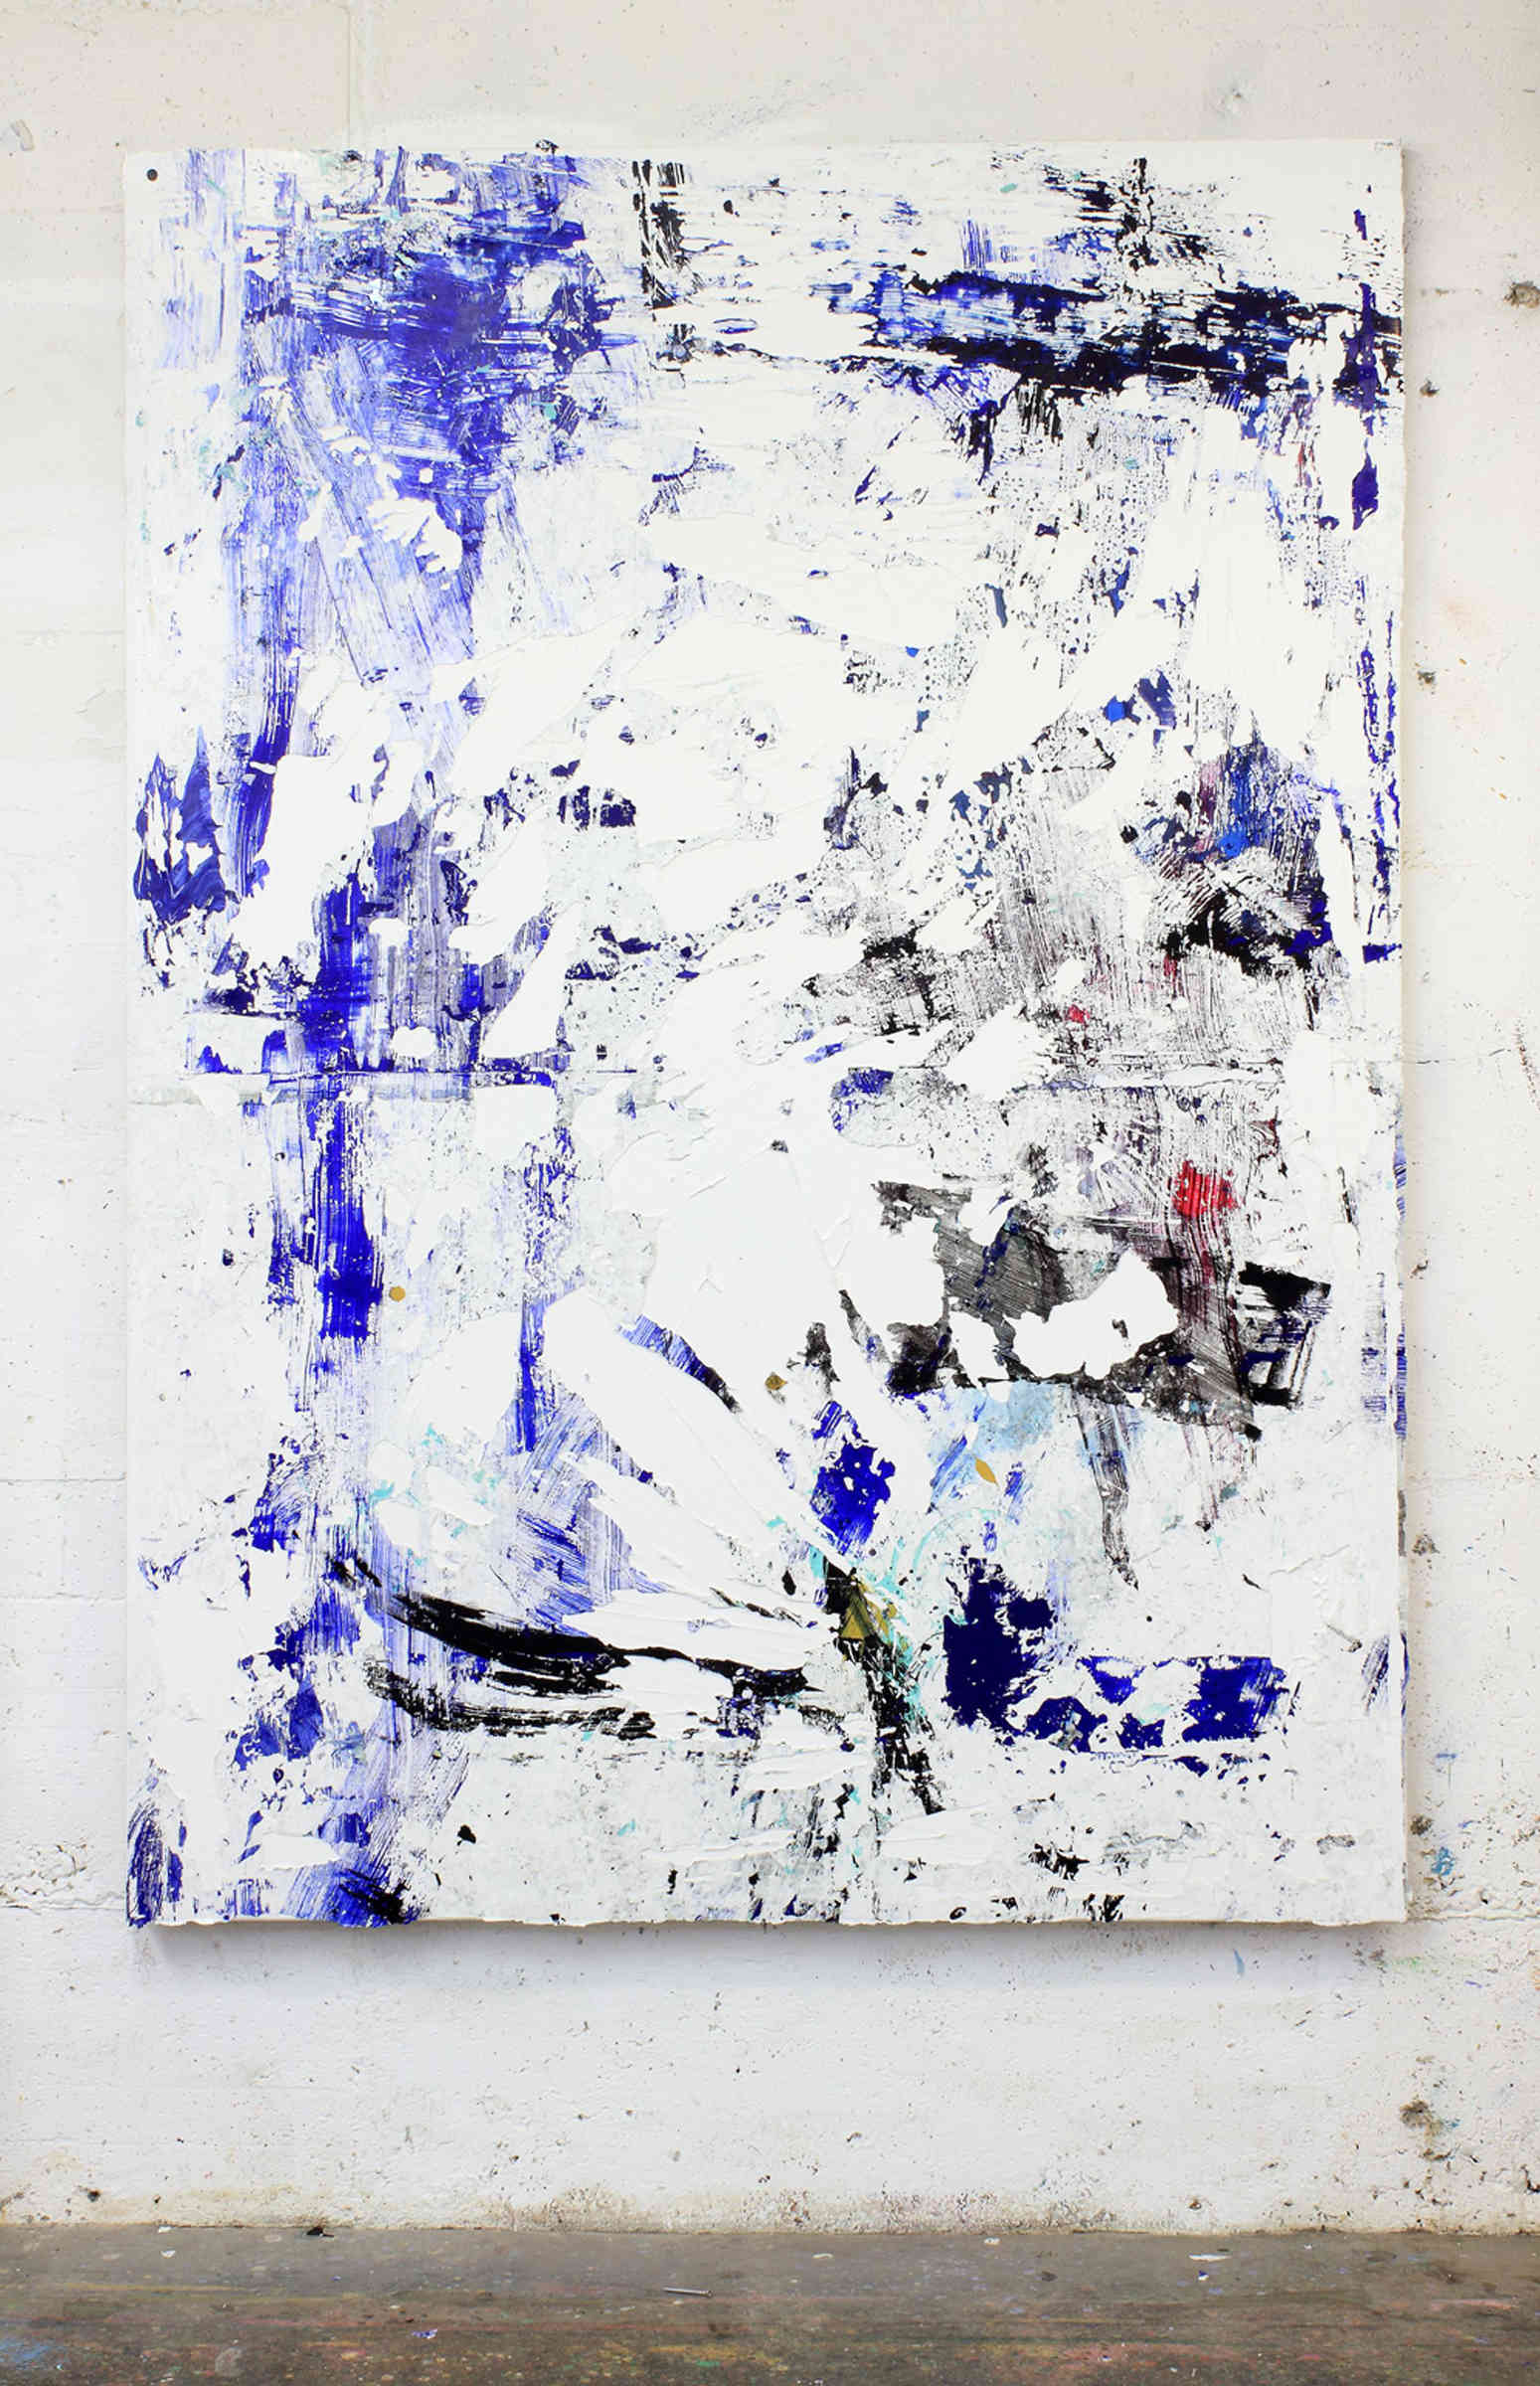 38_untitled, 2015, acrylic, acrylic sediments, binder, dirt and monothype process on primer on cotton, cm 210x150, white artist frame